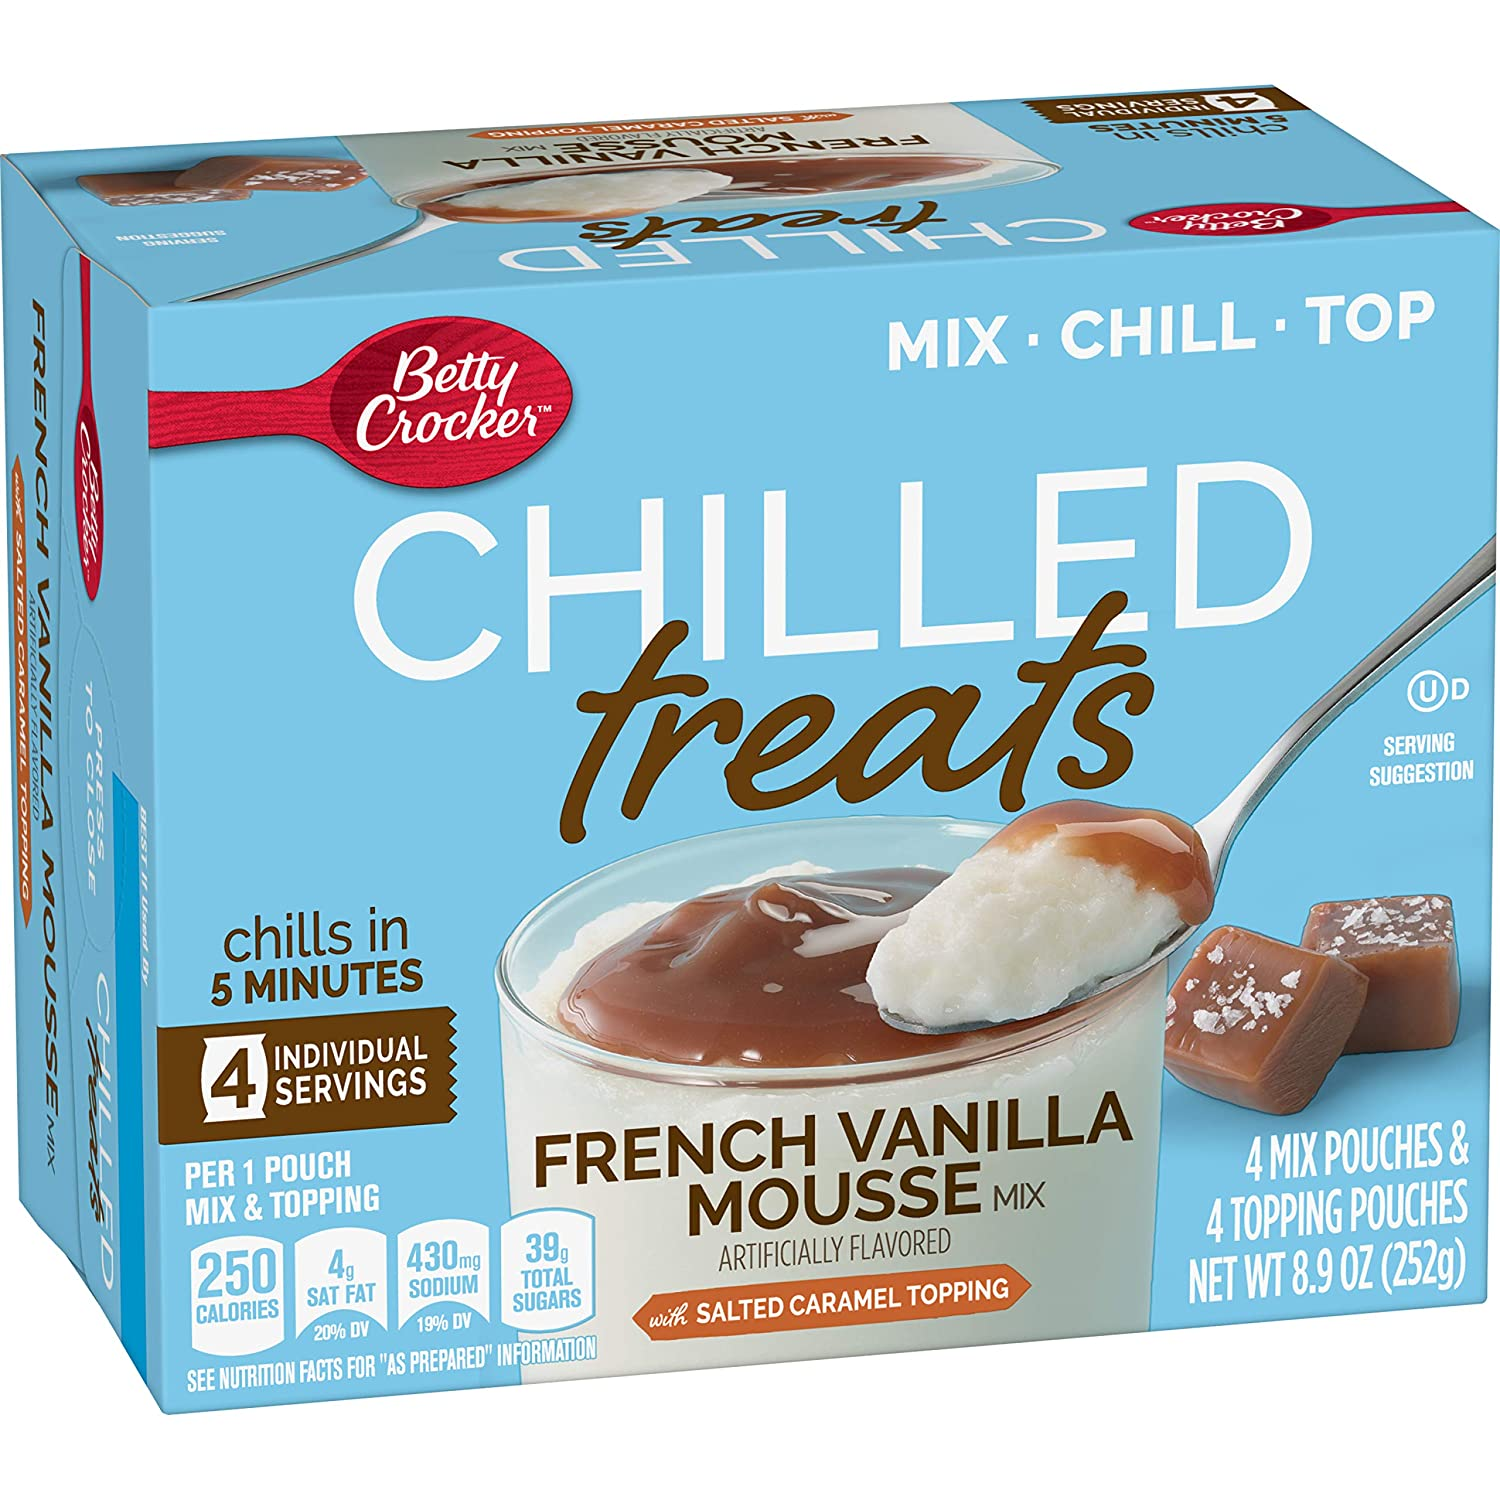 Betty Crocker Chilled Treats, French Vanilla Mousse Mix with Salted Caramel Topping, 8.9 oz